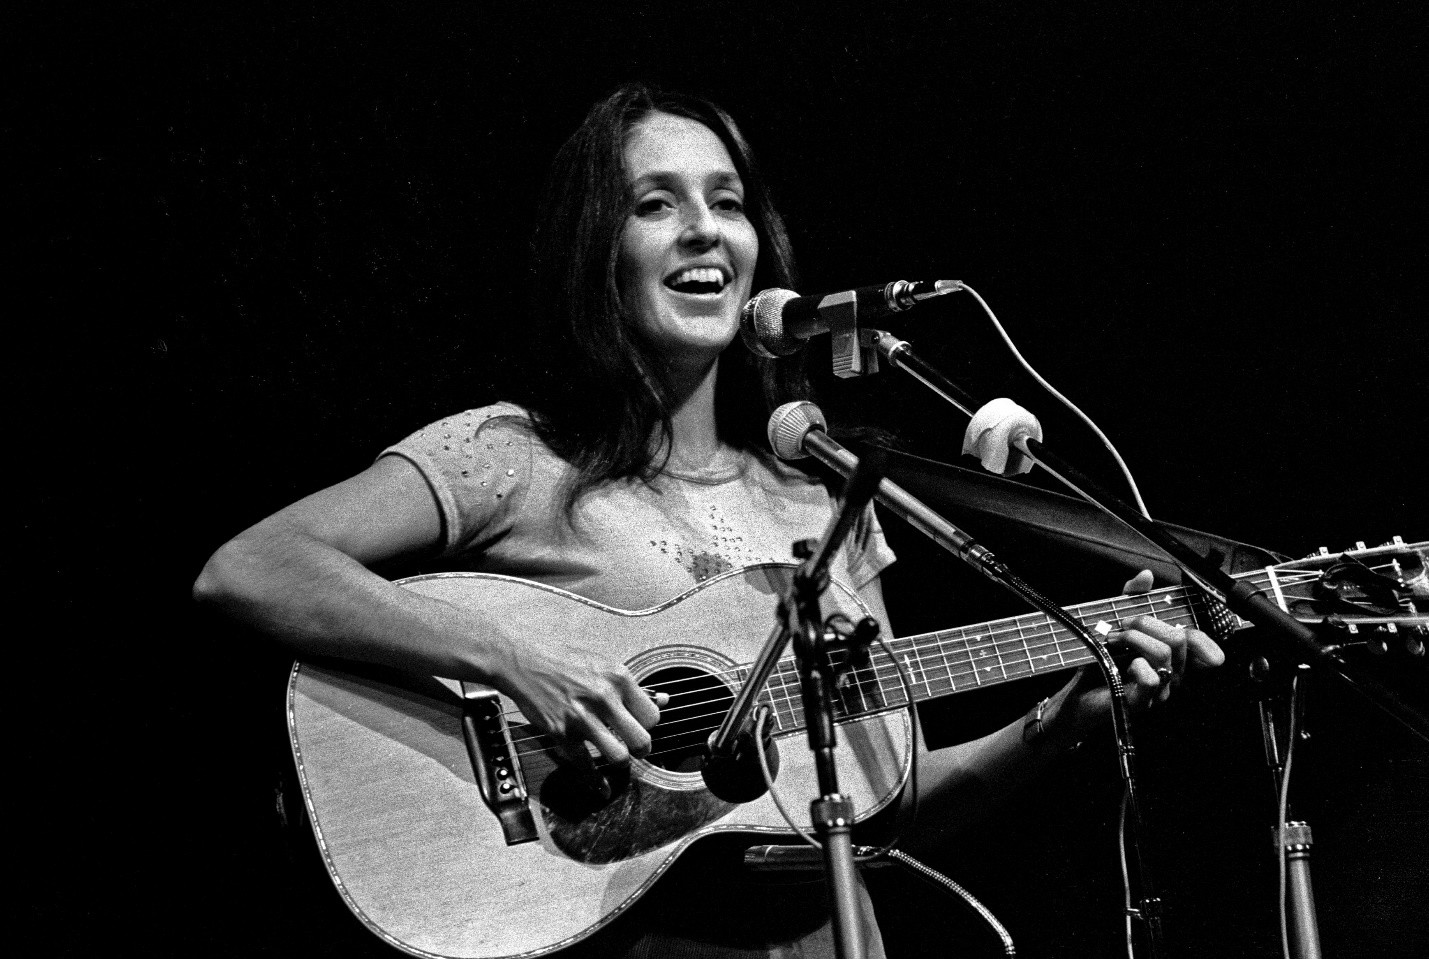 Photo Credit: https://upload.wikimedia.org/wikipedia/commons/3/33/Joan_Baez_Hamburg_1973_2811730005.jpg